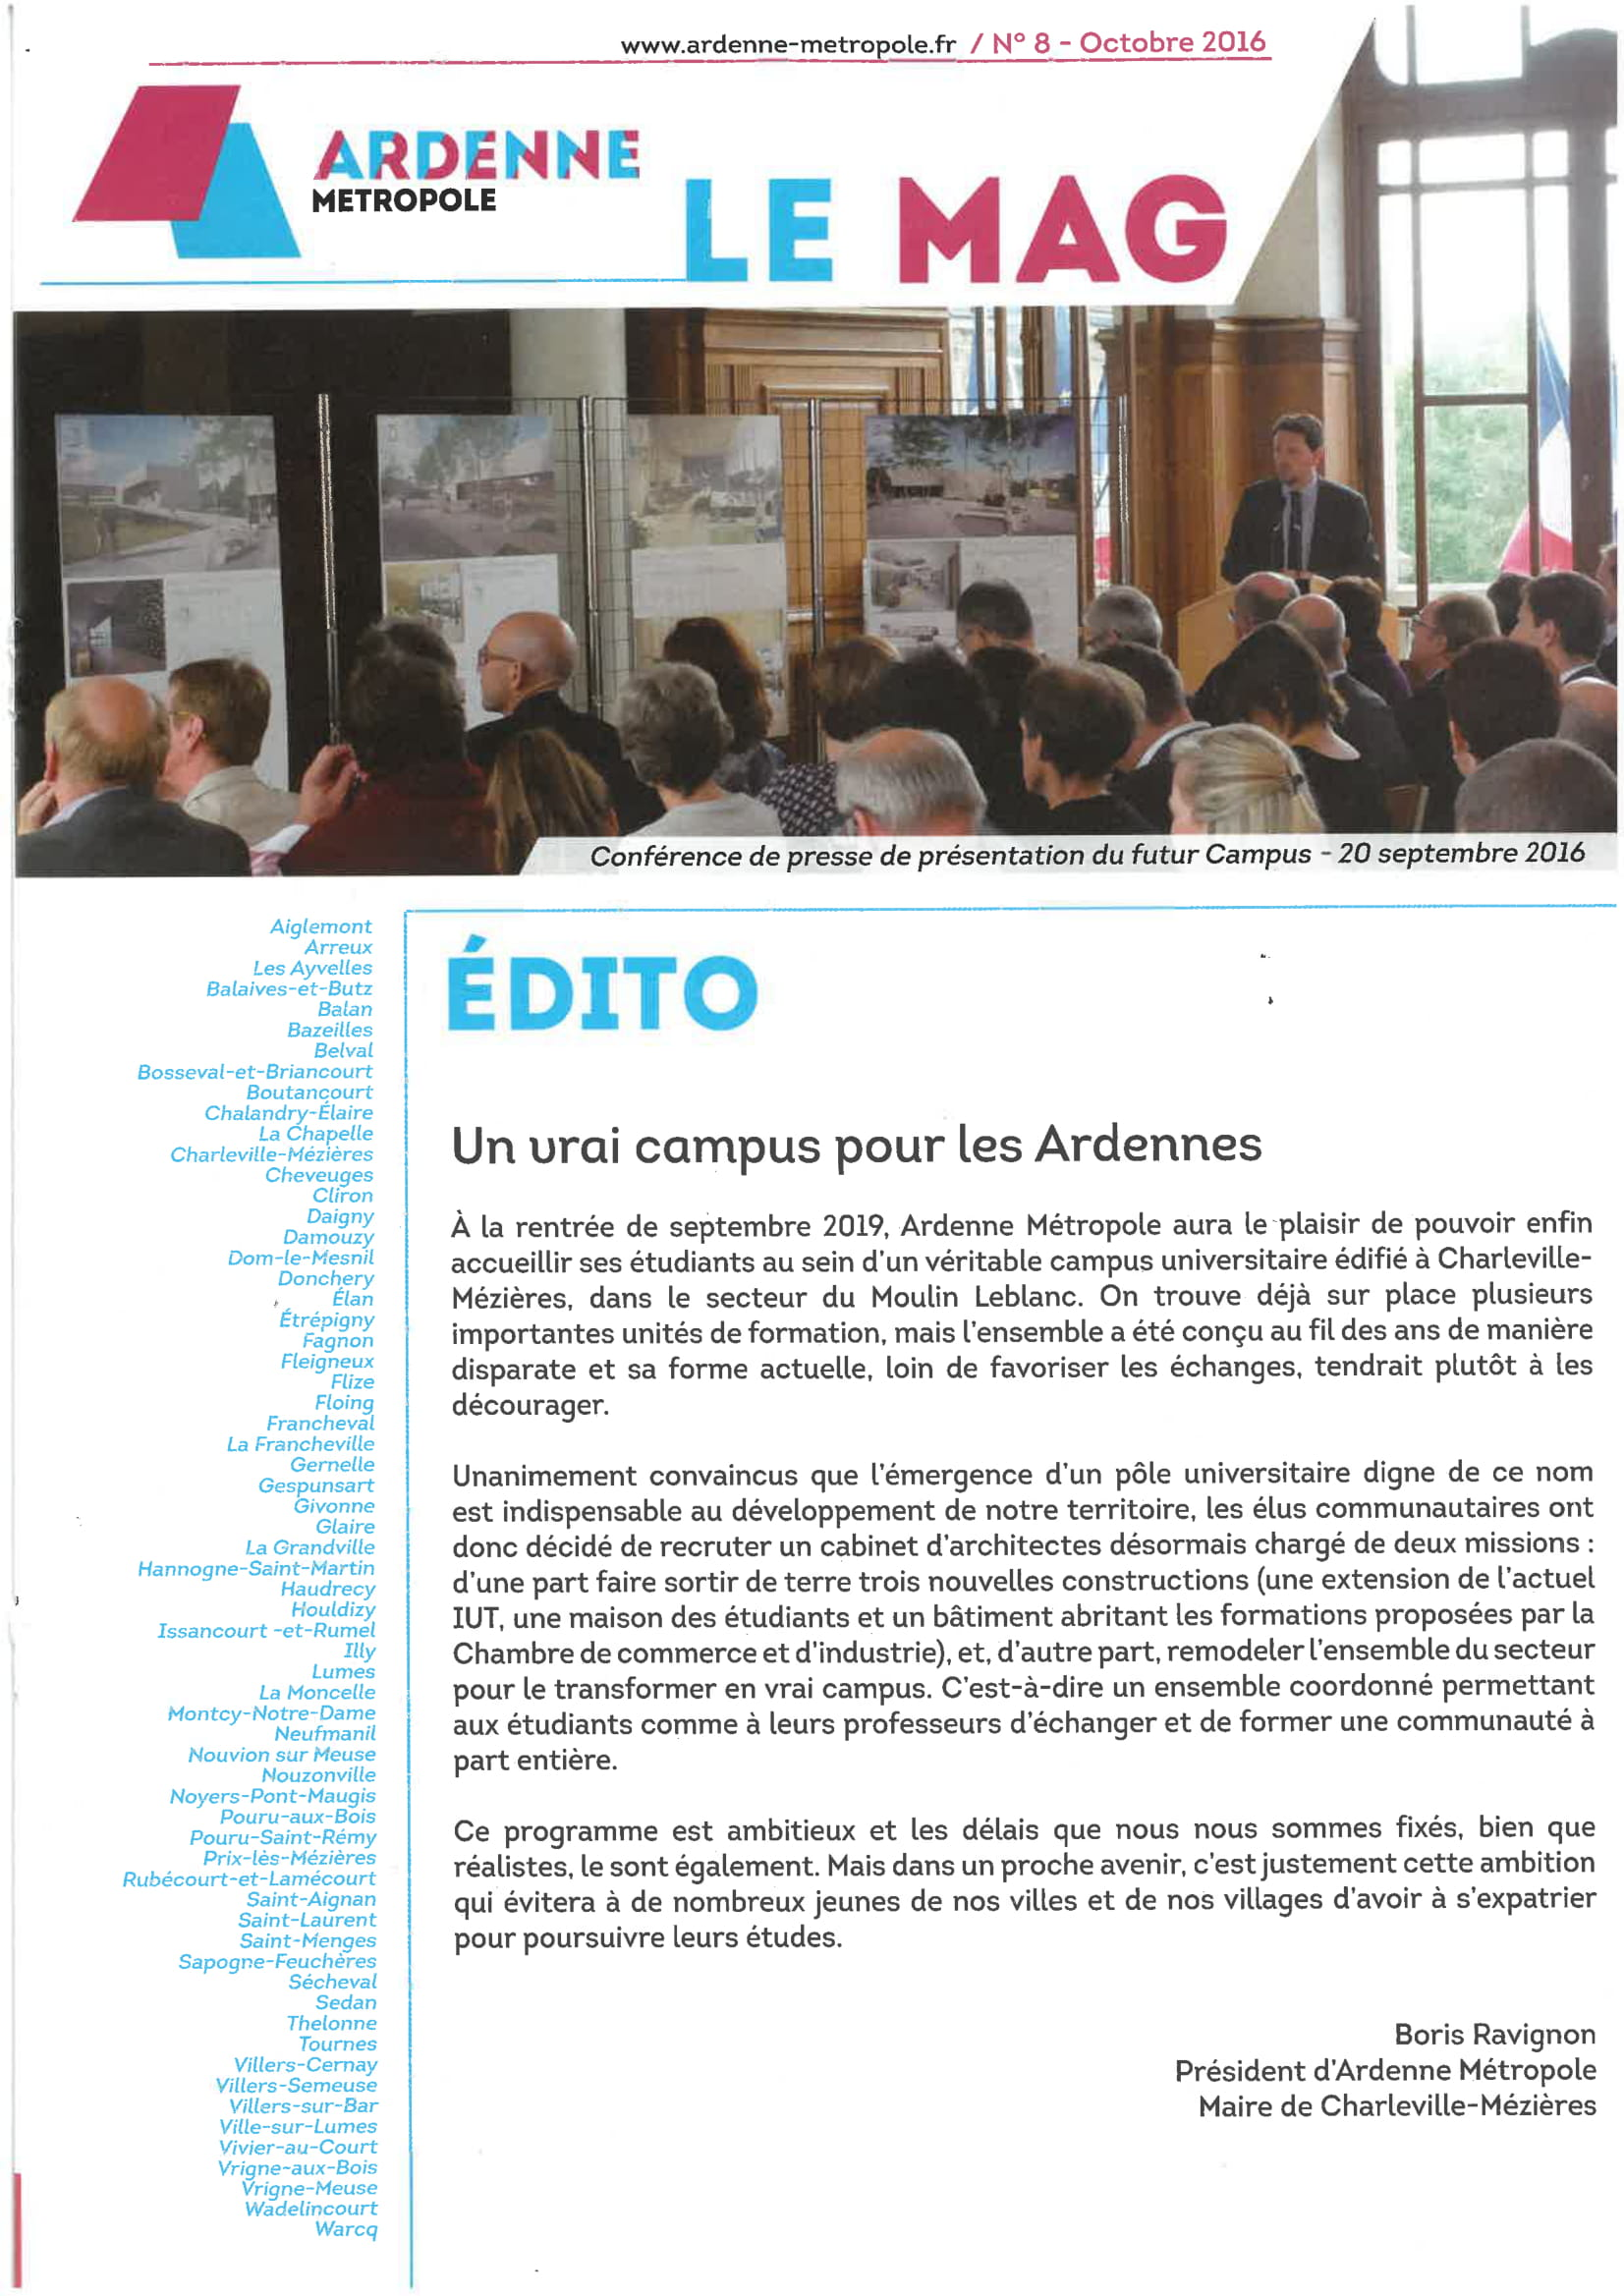 CAROLO MAG_OCTOBRE 2016_Cahier central_4